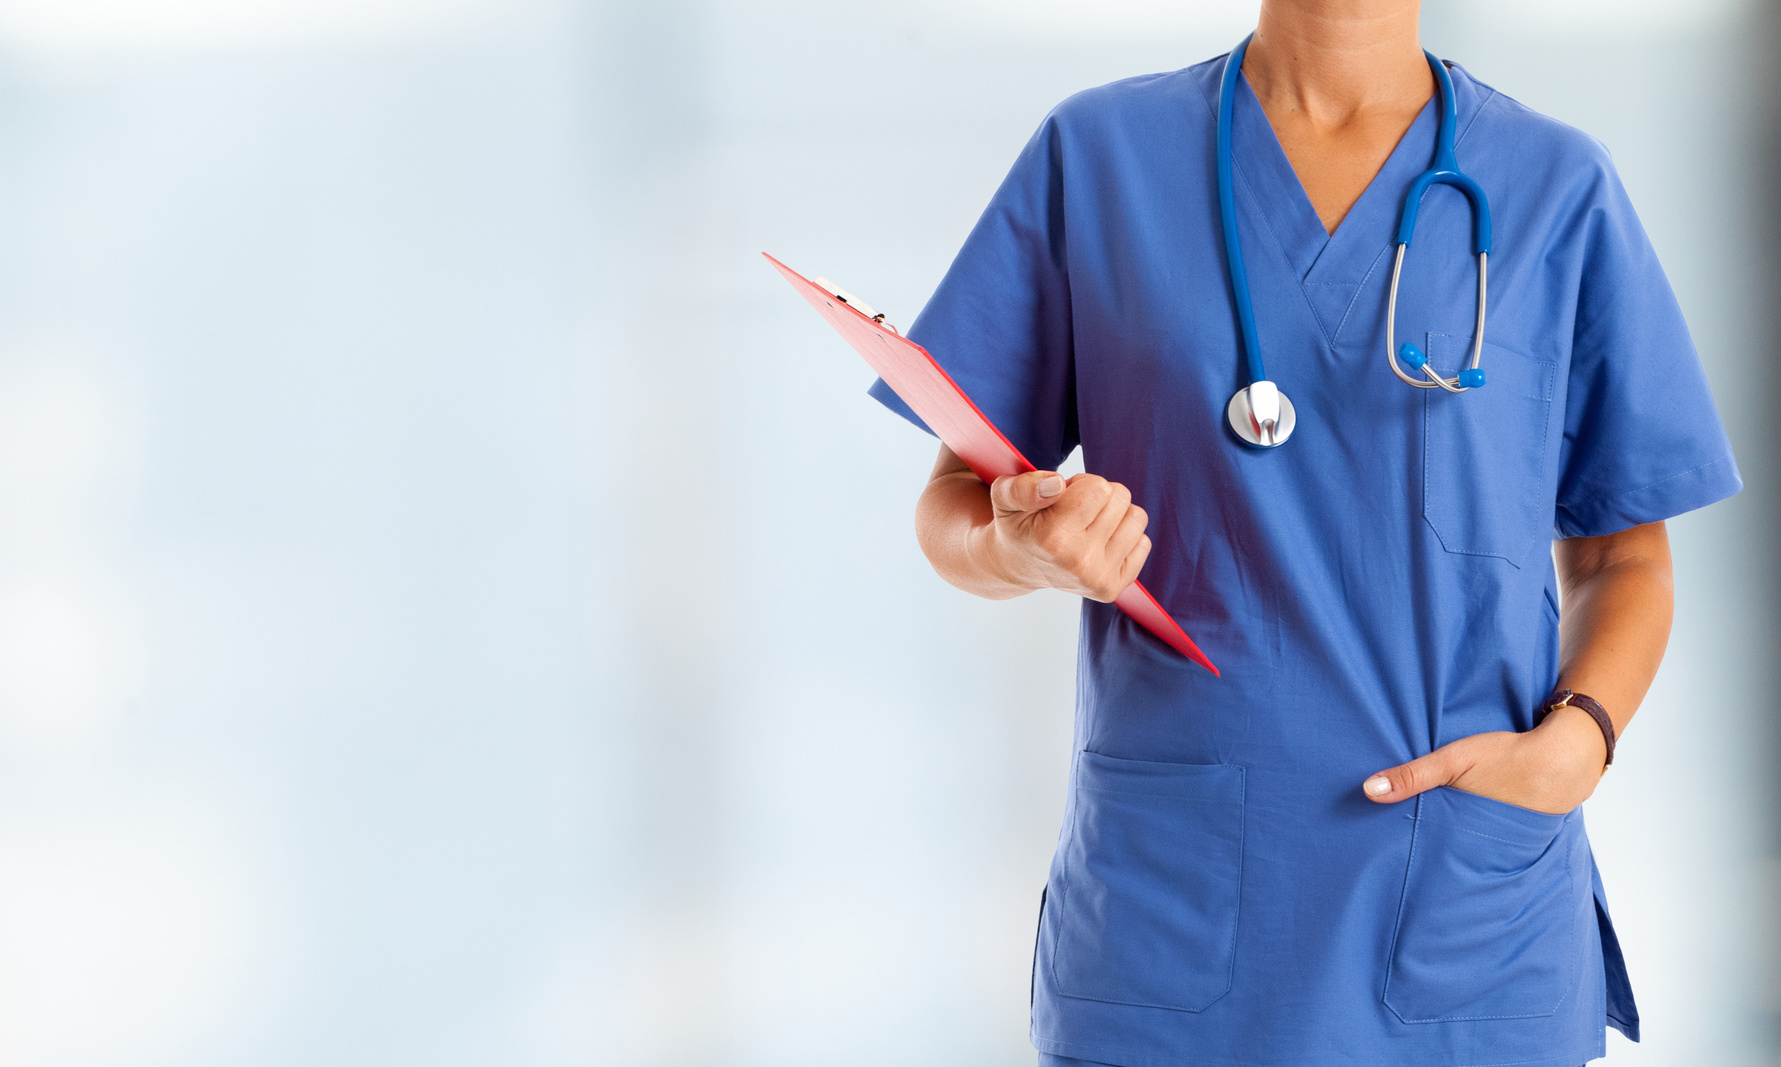 Nearly Half of Nurses Consider Changing Careers as Nationwide Shortage Looms